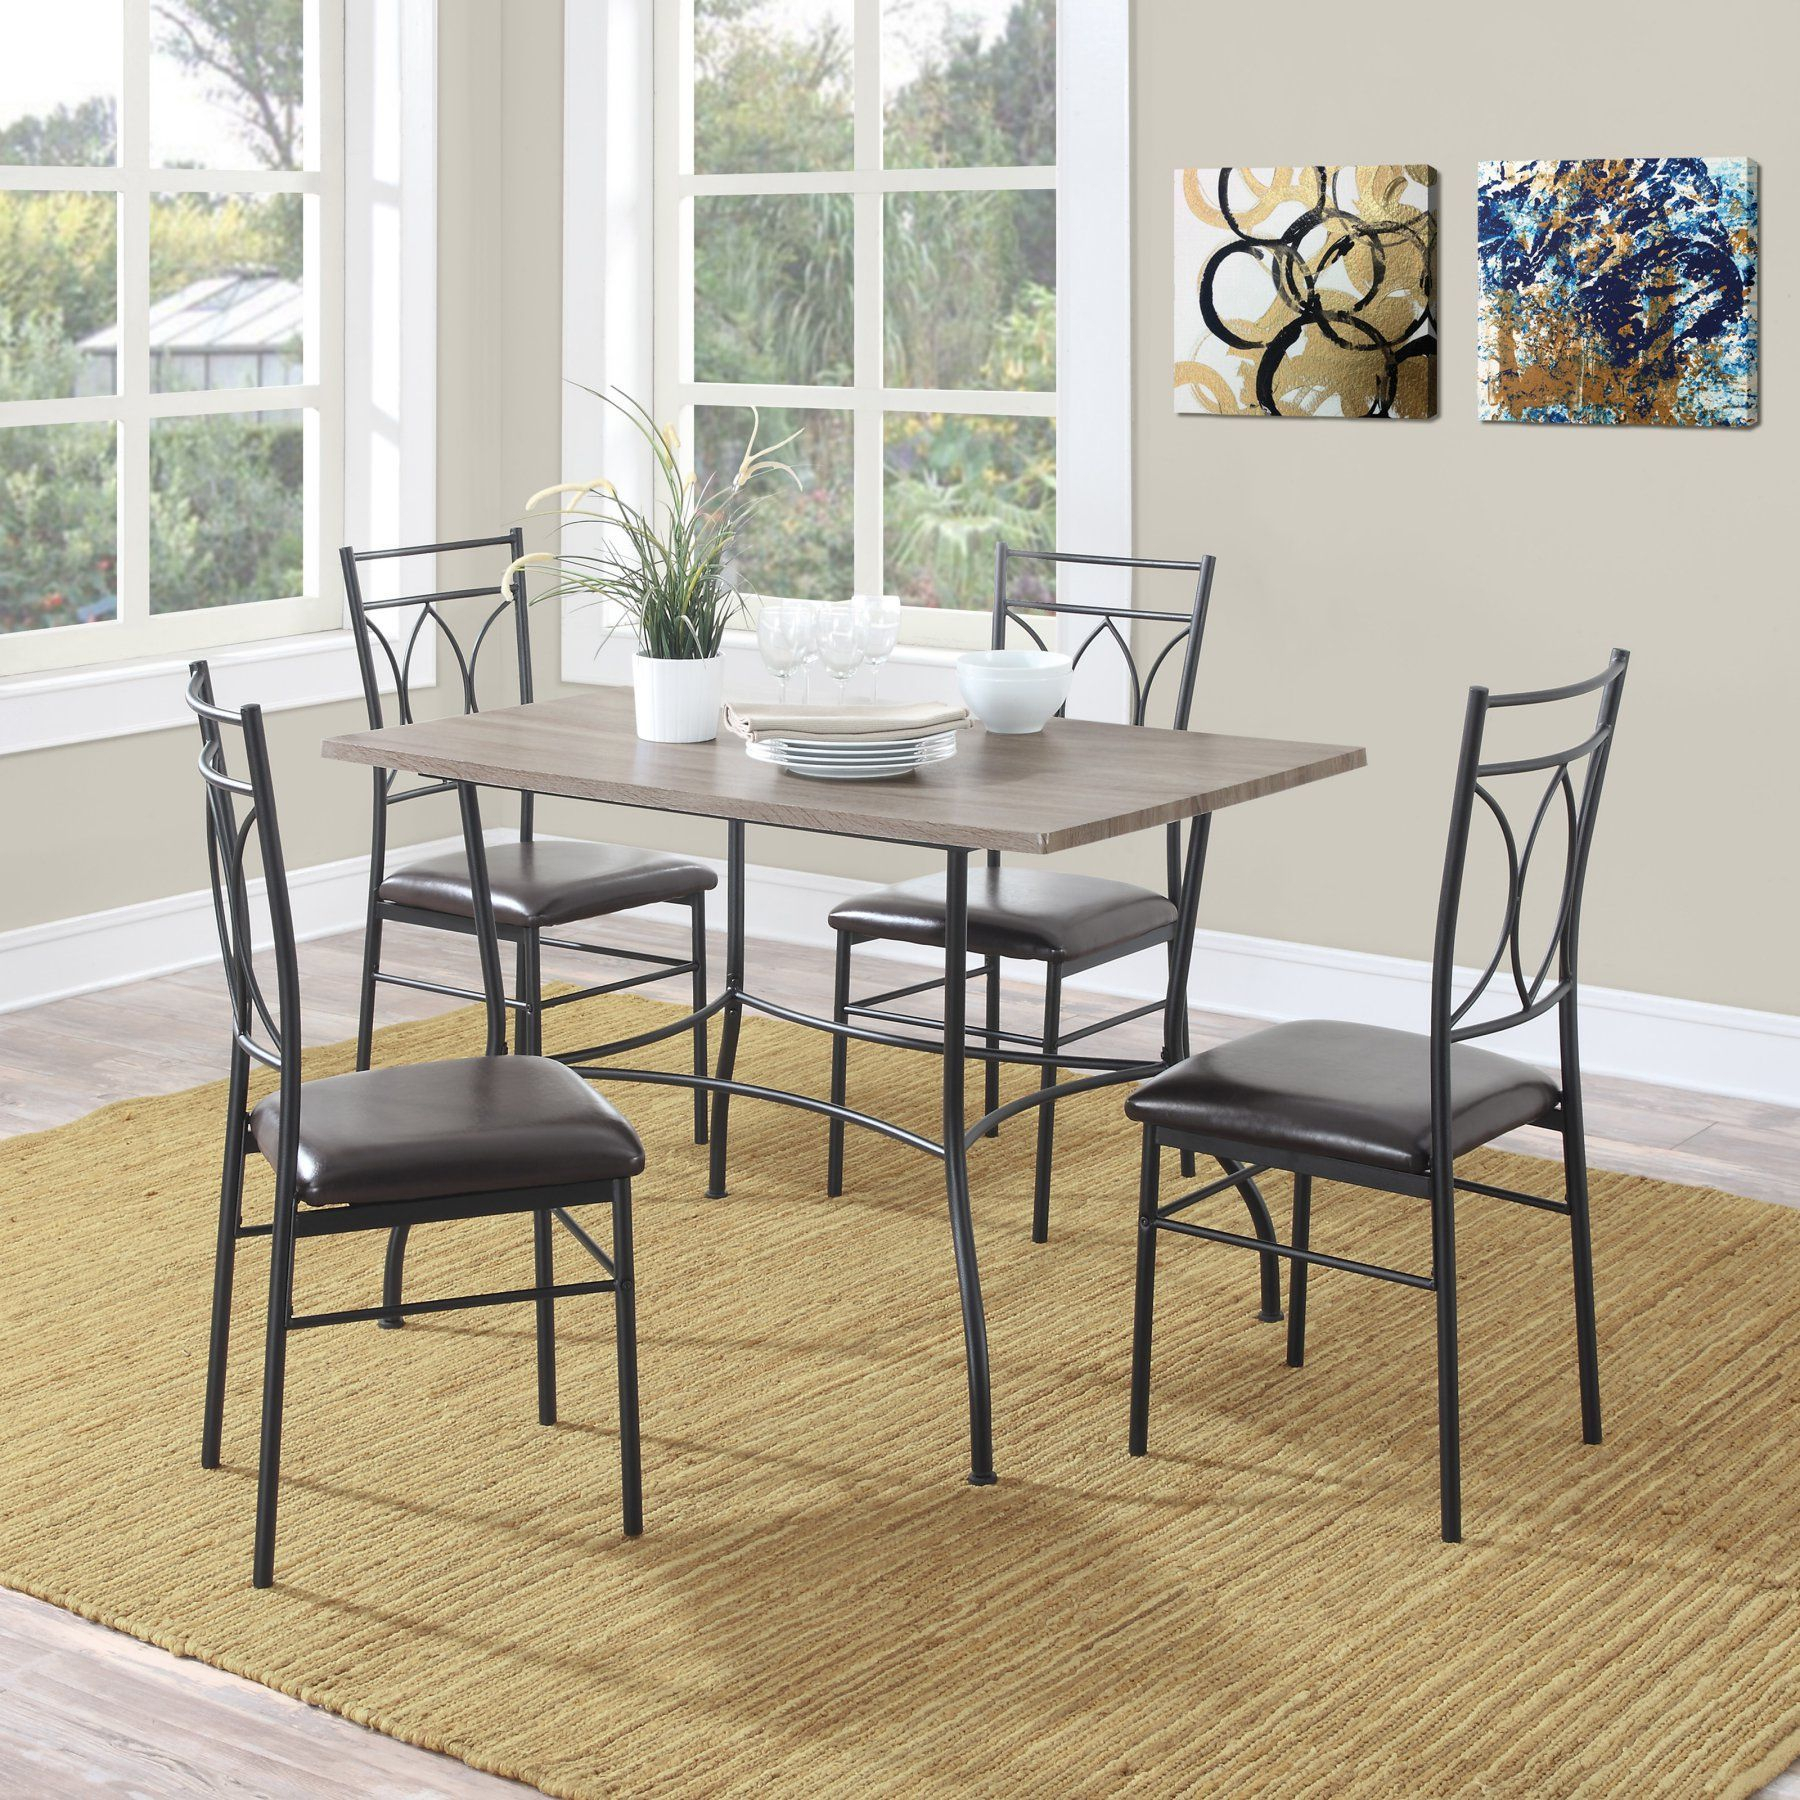 Dorel Living Shelby 5 Piece Rustic Wood & Metal Dining Set Inside Best And Newest Wiggs 5 Piece Dining Sets (View 6 of 20)